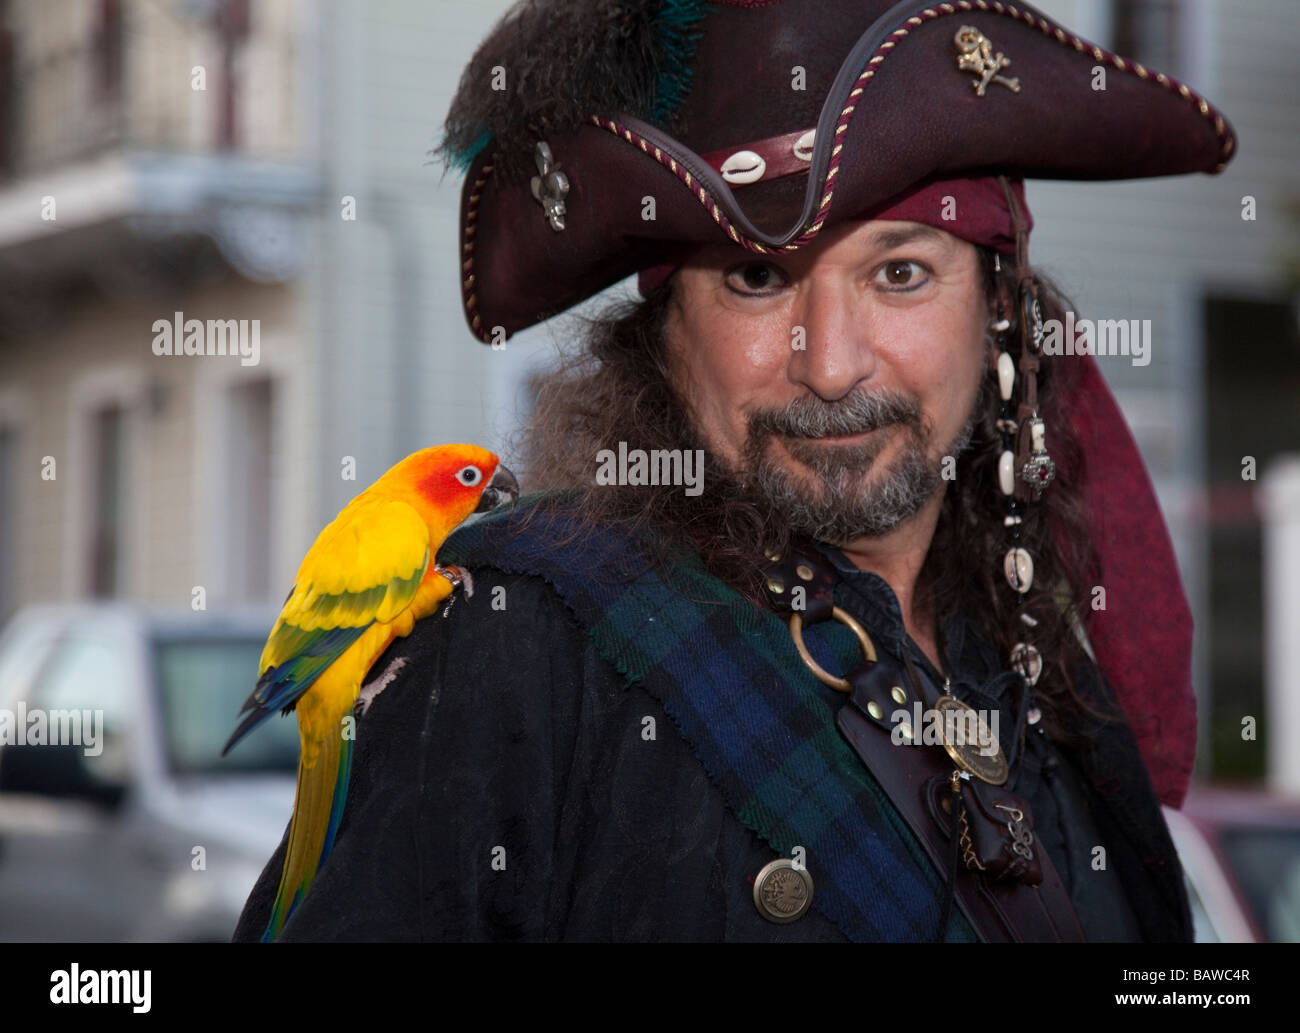 Pirates Parade in New Orleans - Stock Image  sc 1 st  Alamy & Parrot Costume Stock Photos u0026 Parrot Costume Stock Images - Alamy